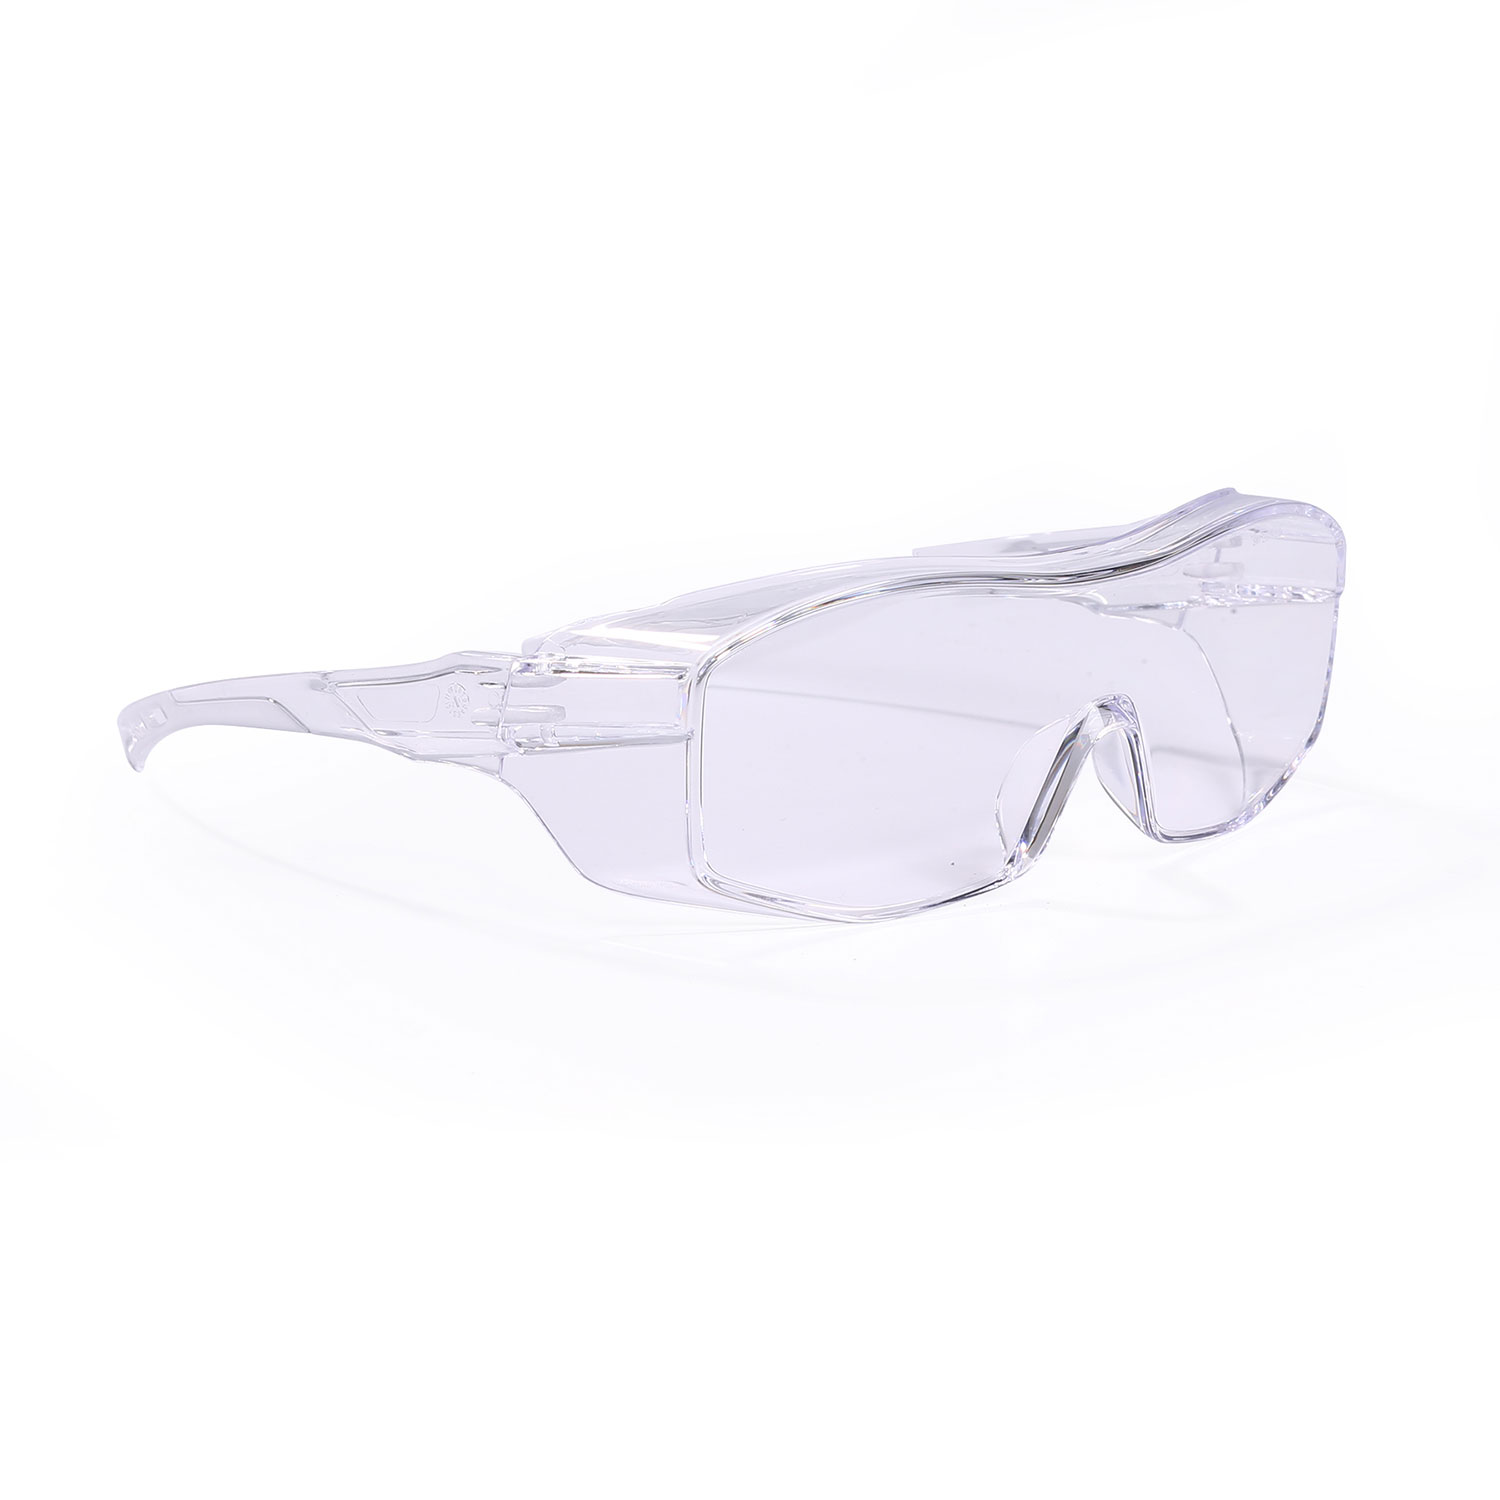 3M Peltor Sport Over The Glass Safety Eyewear (6 pack)